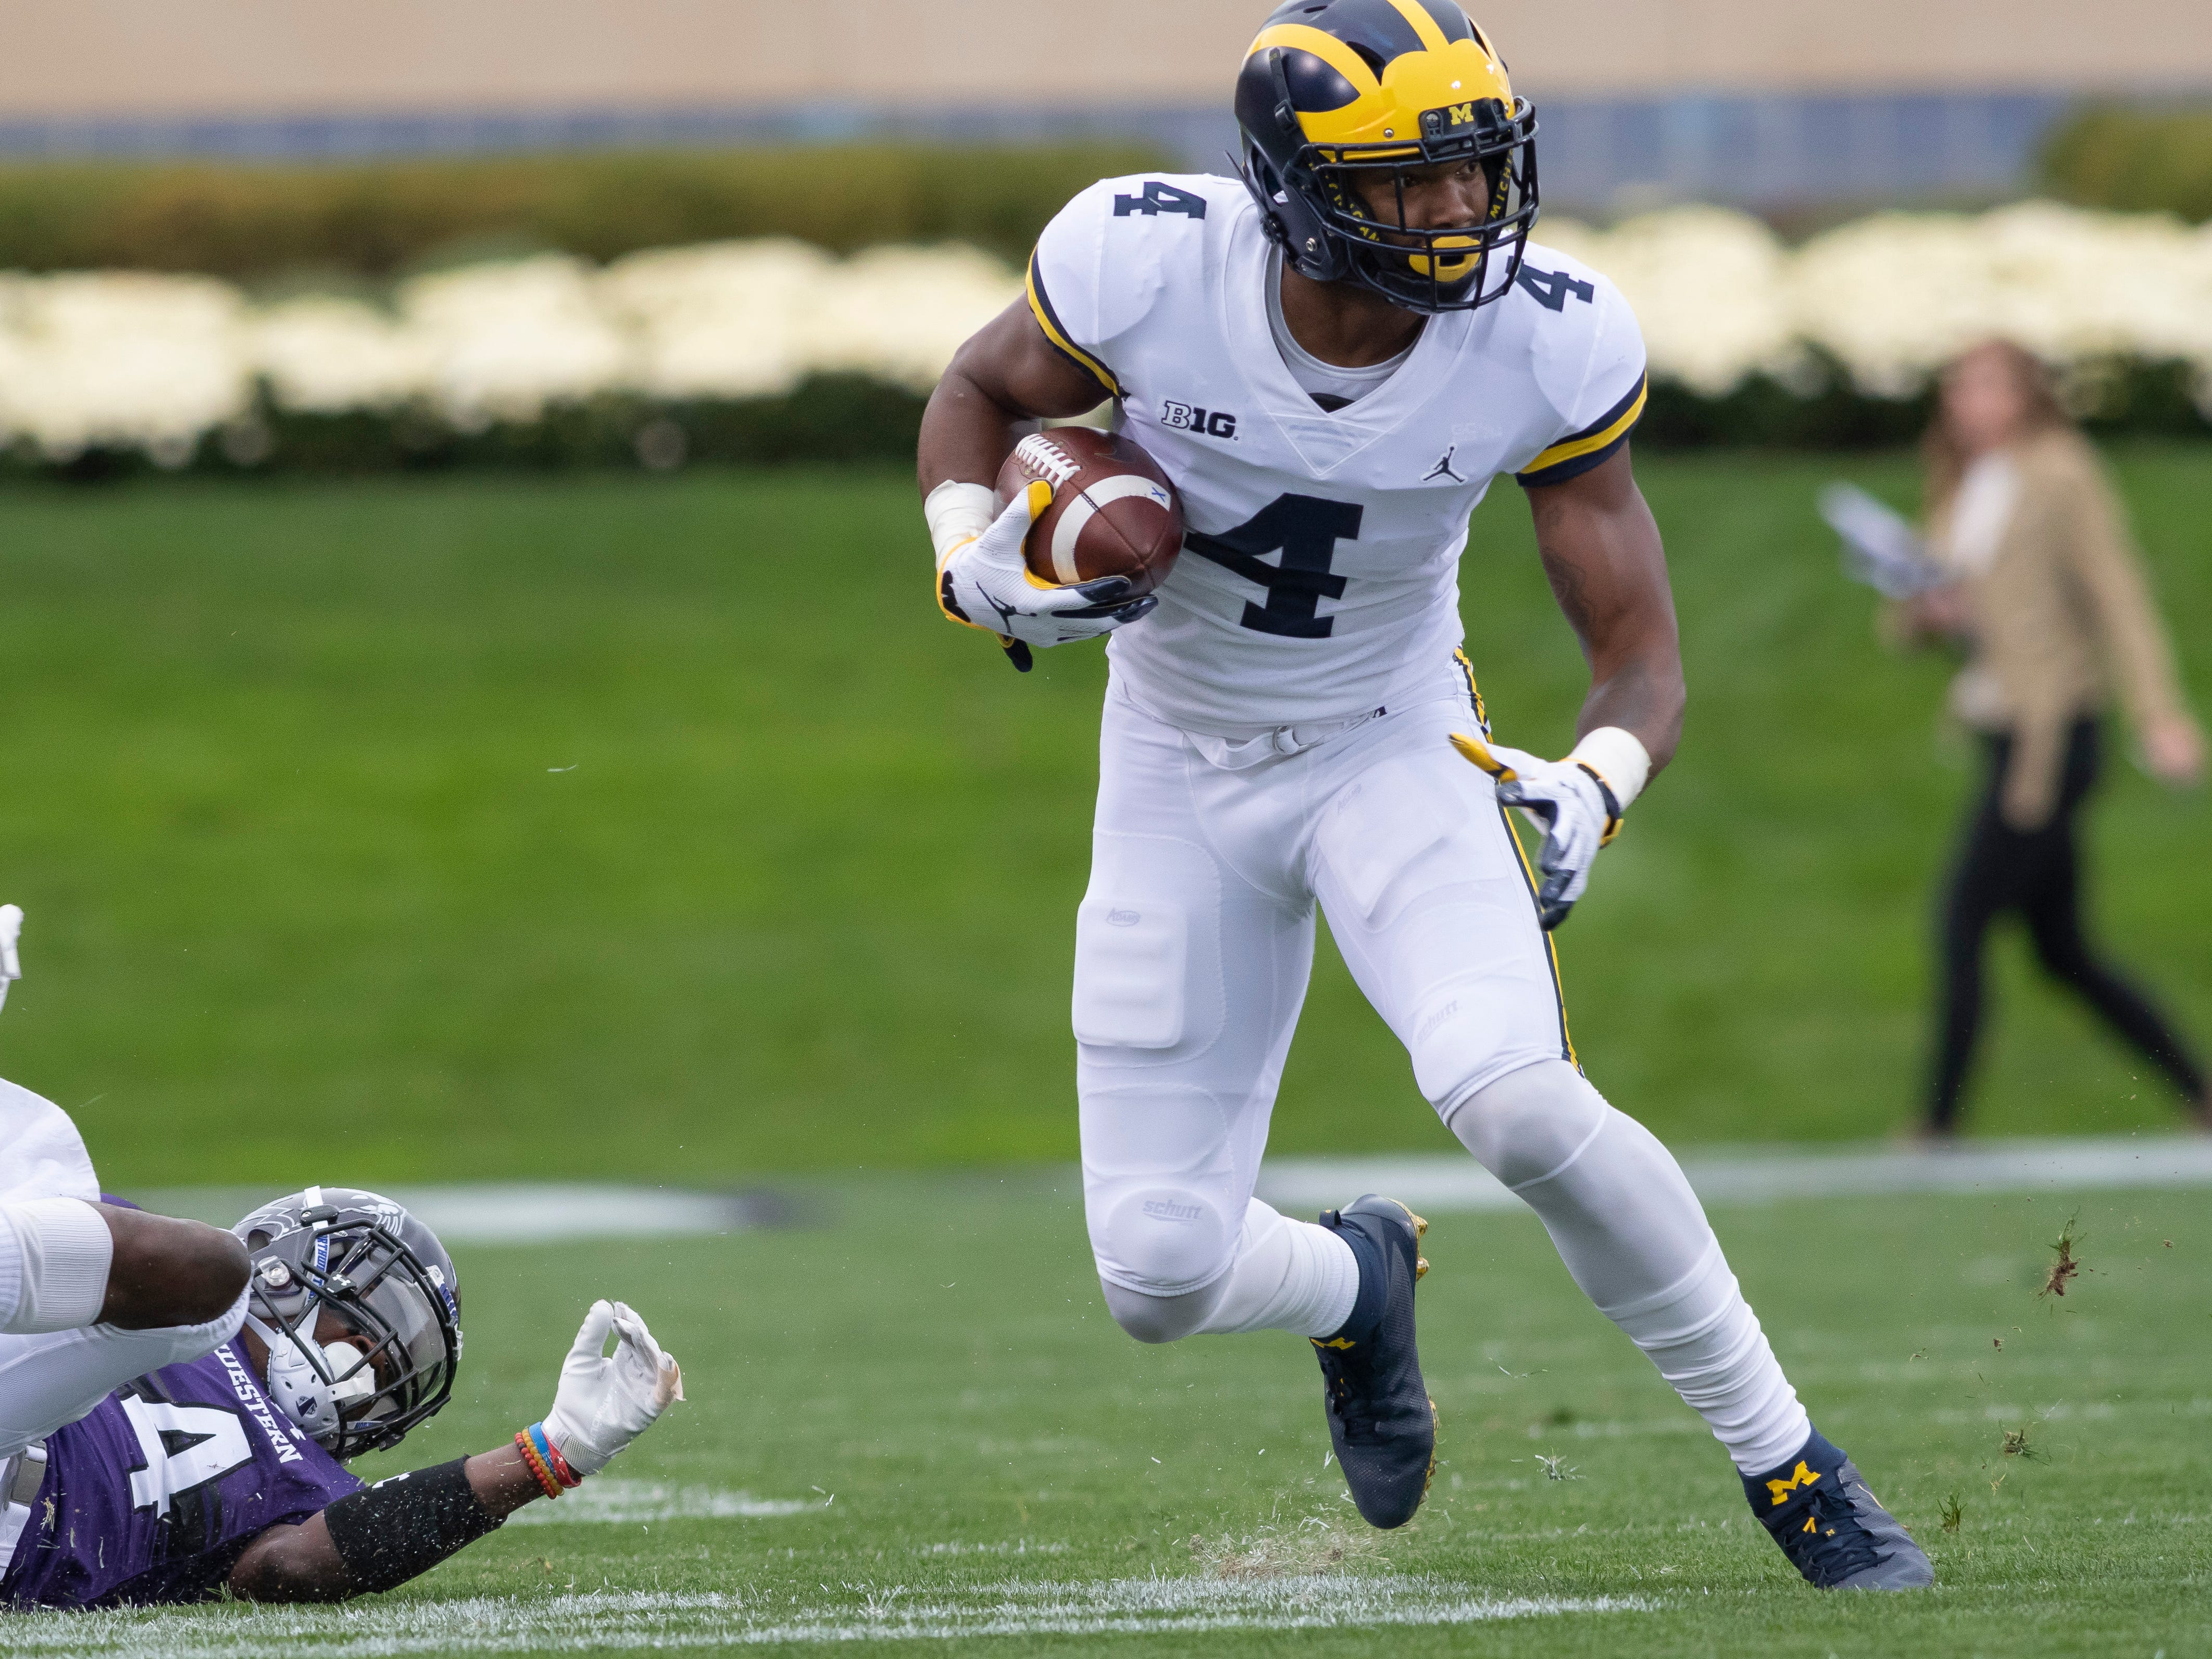 WIDE RECEIVER: Nico Collins – The sure-handed Collins, like Peoples-Jones, will be a junior this fall. He had 632 yards on 38 catches and scored six touchdowns.